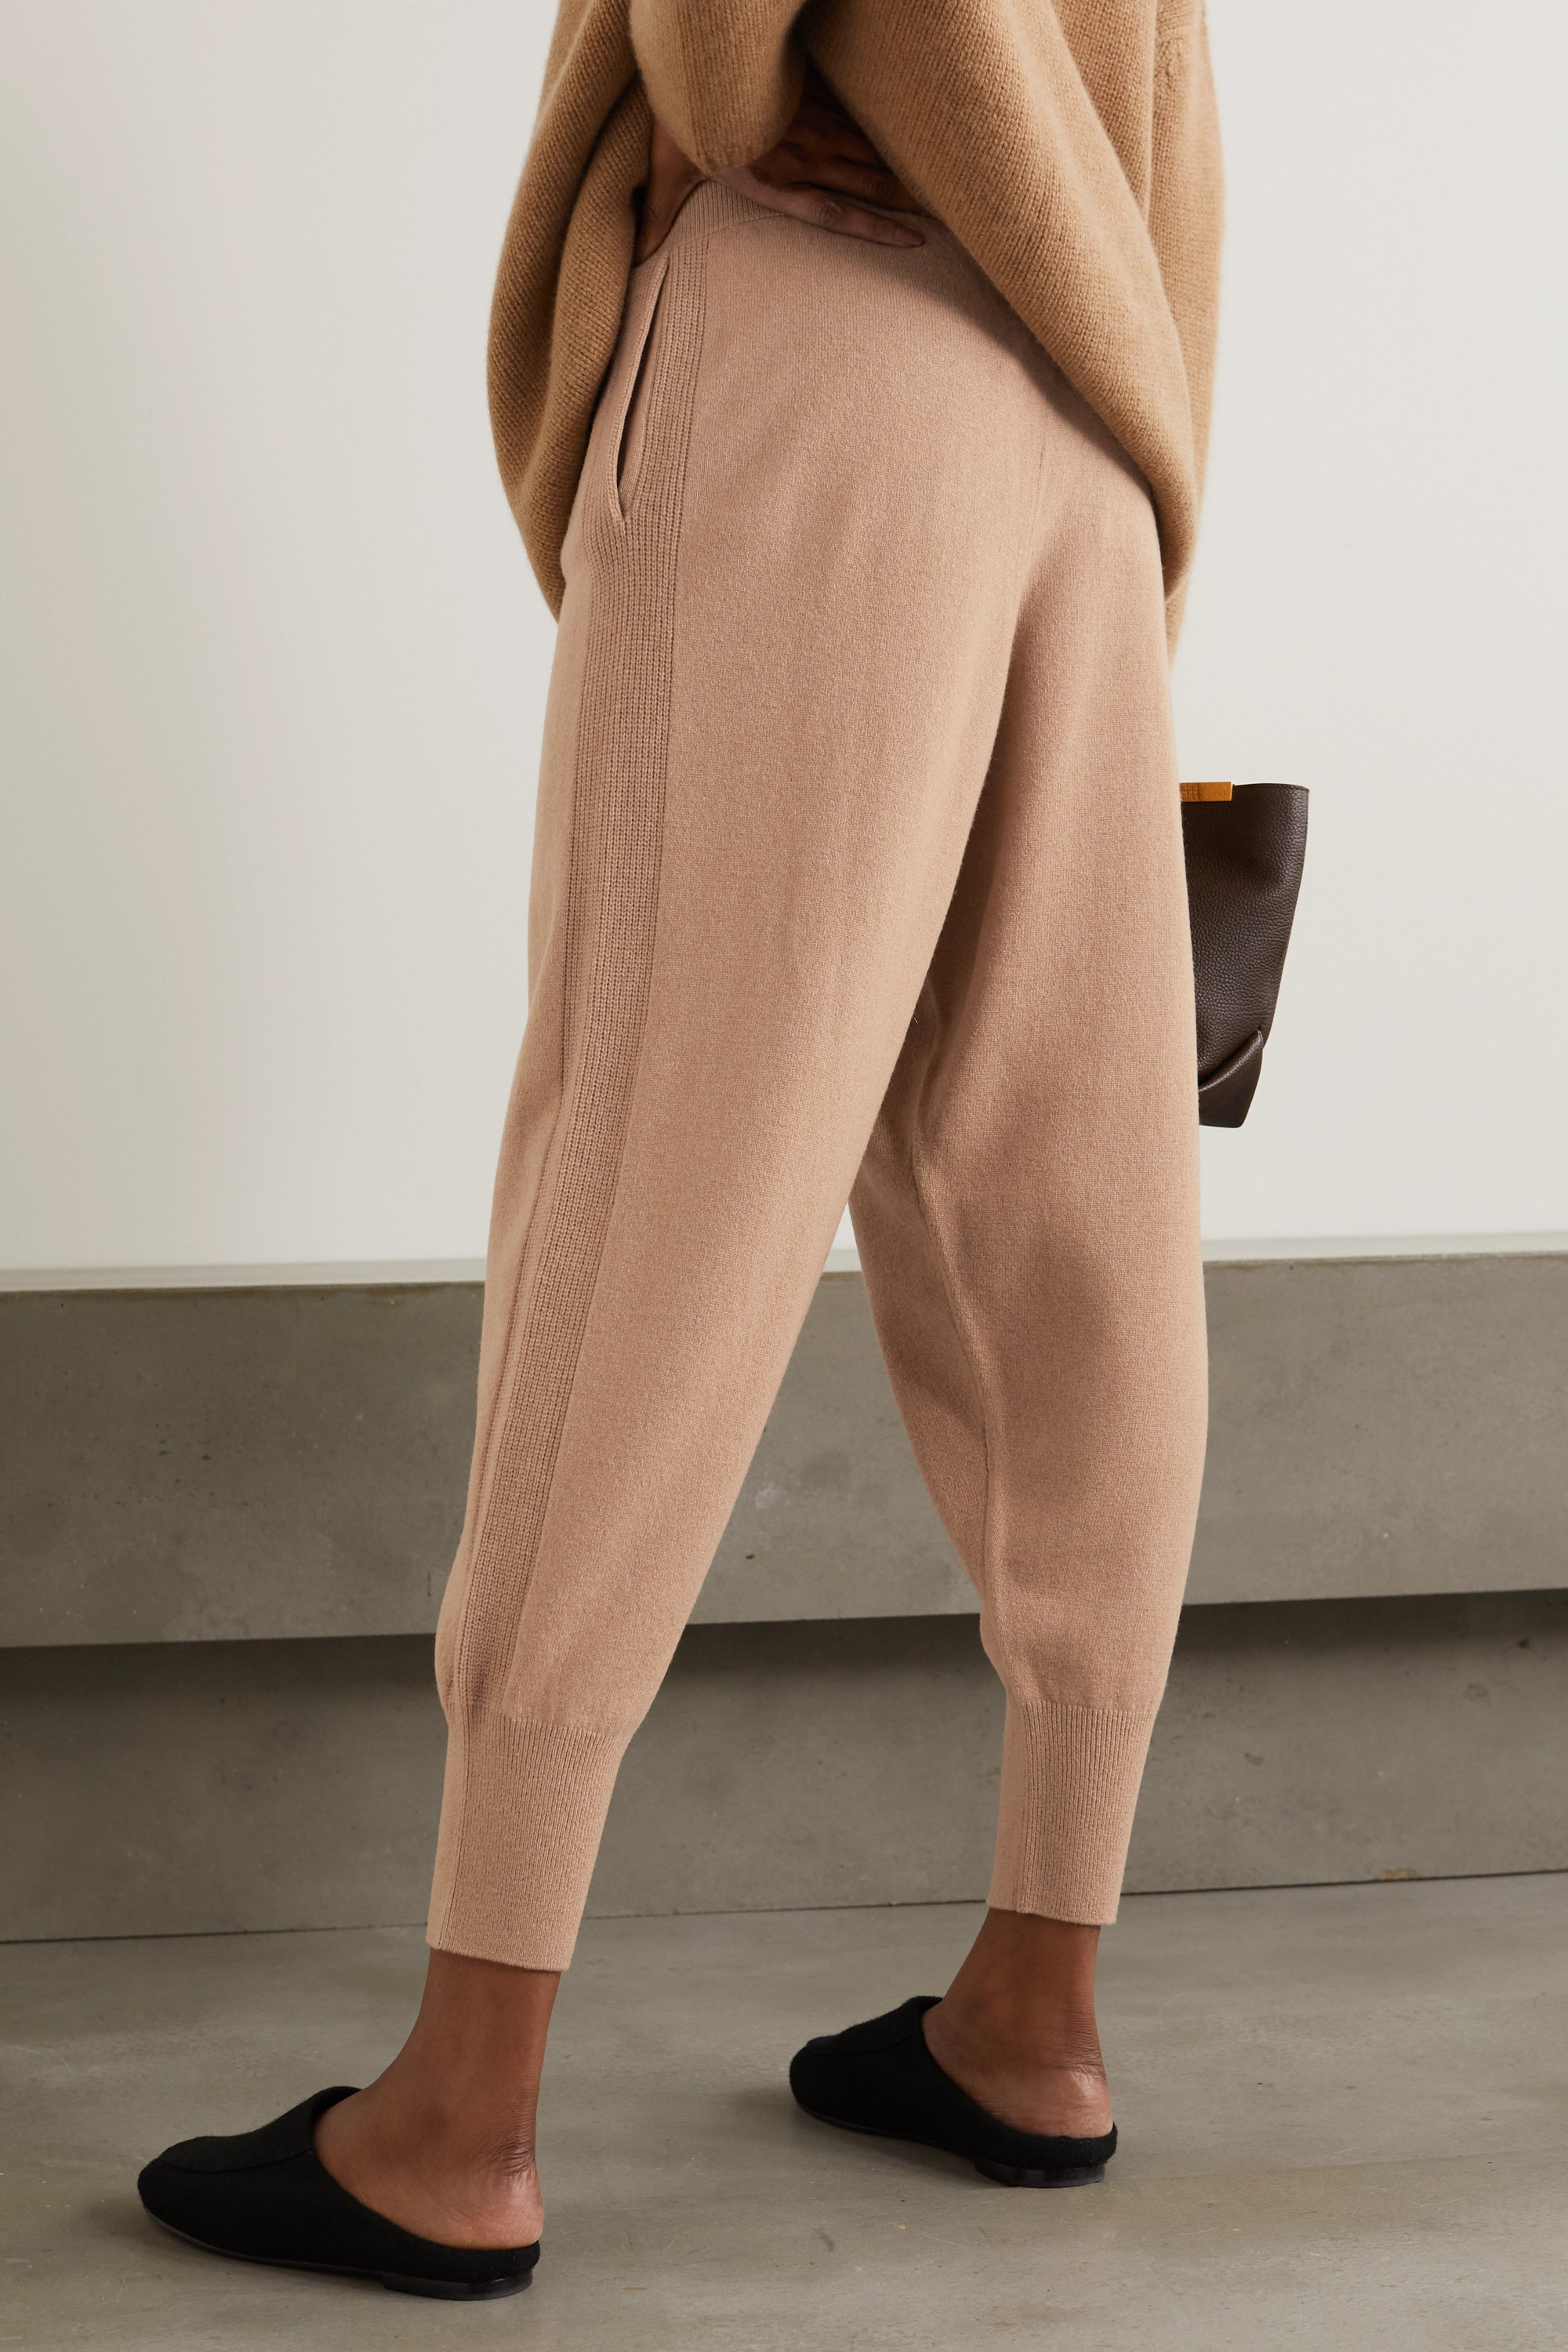 STELLA MCCARTNEY + NET SUSTAIN cashmere and wool-blend track pants